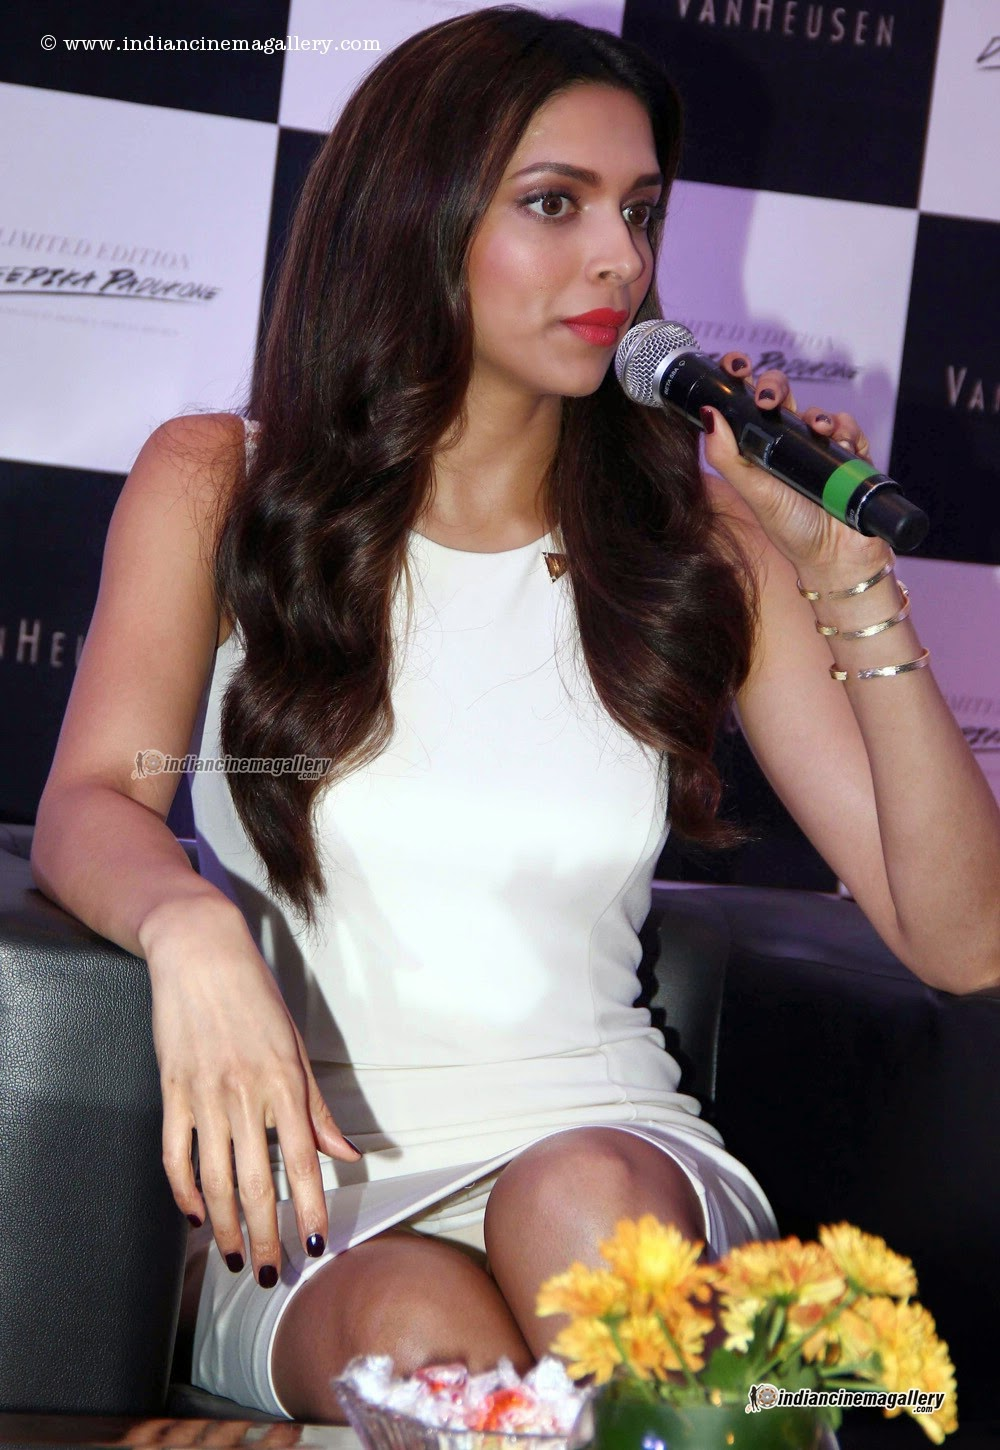 deepika-padukone-at-van-heusen-spring-summer-2014-limited-edition-launch